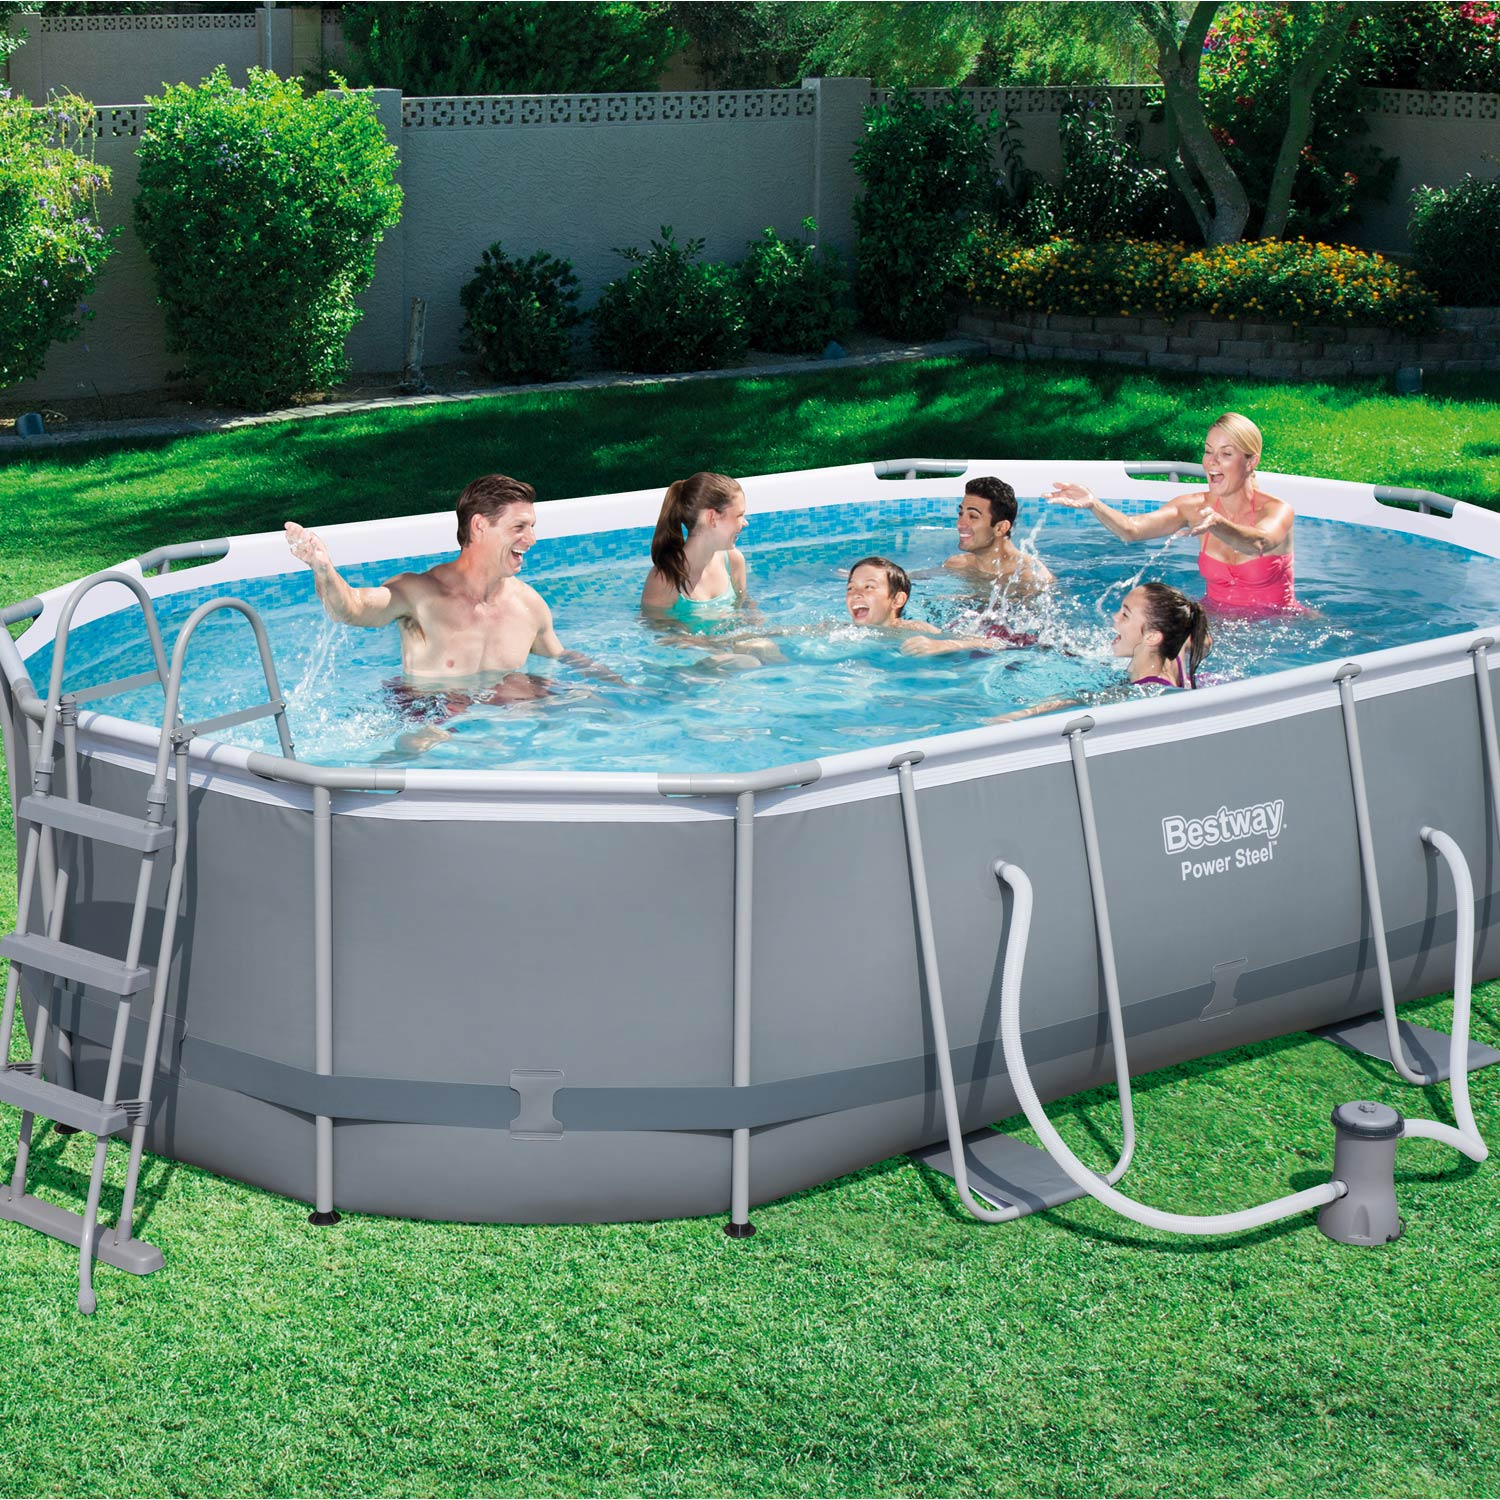 Piscine hors sol autoportante tubulaire bestway l x for Securiser piscine hors sol